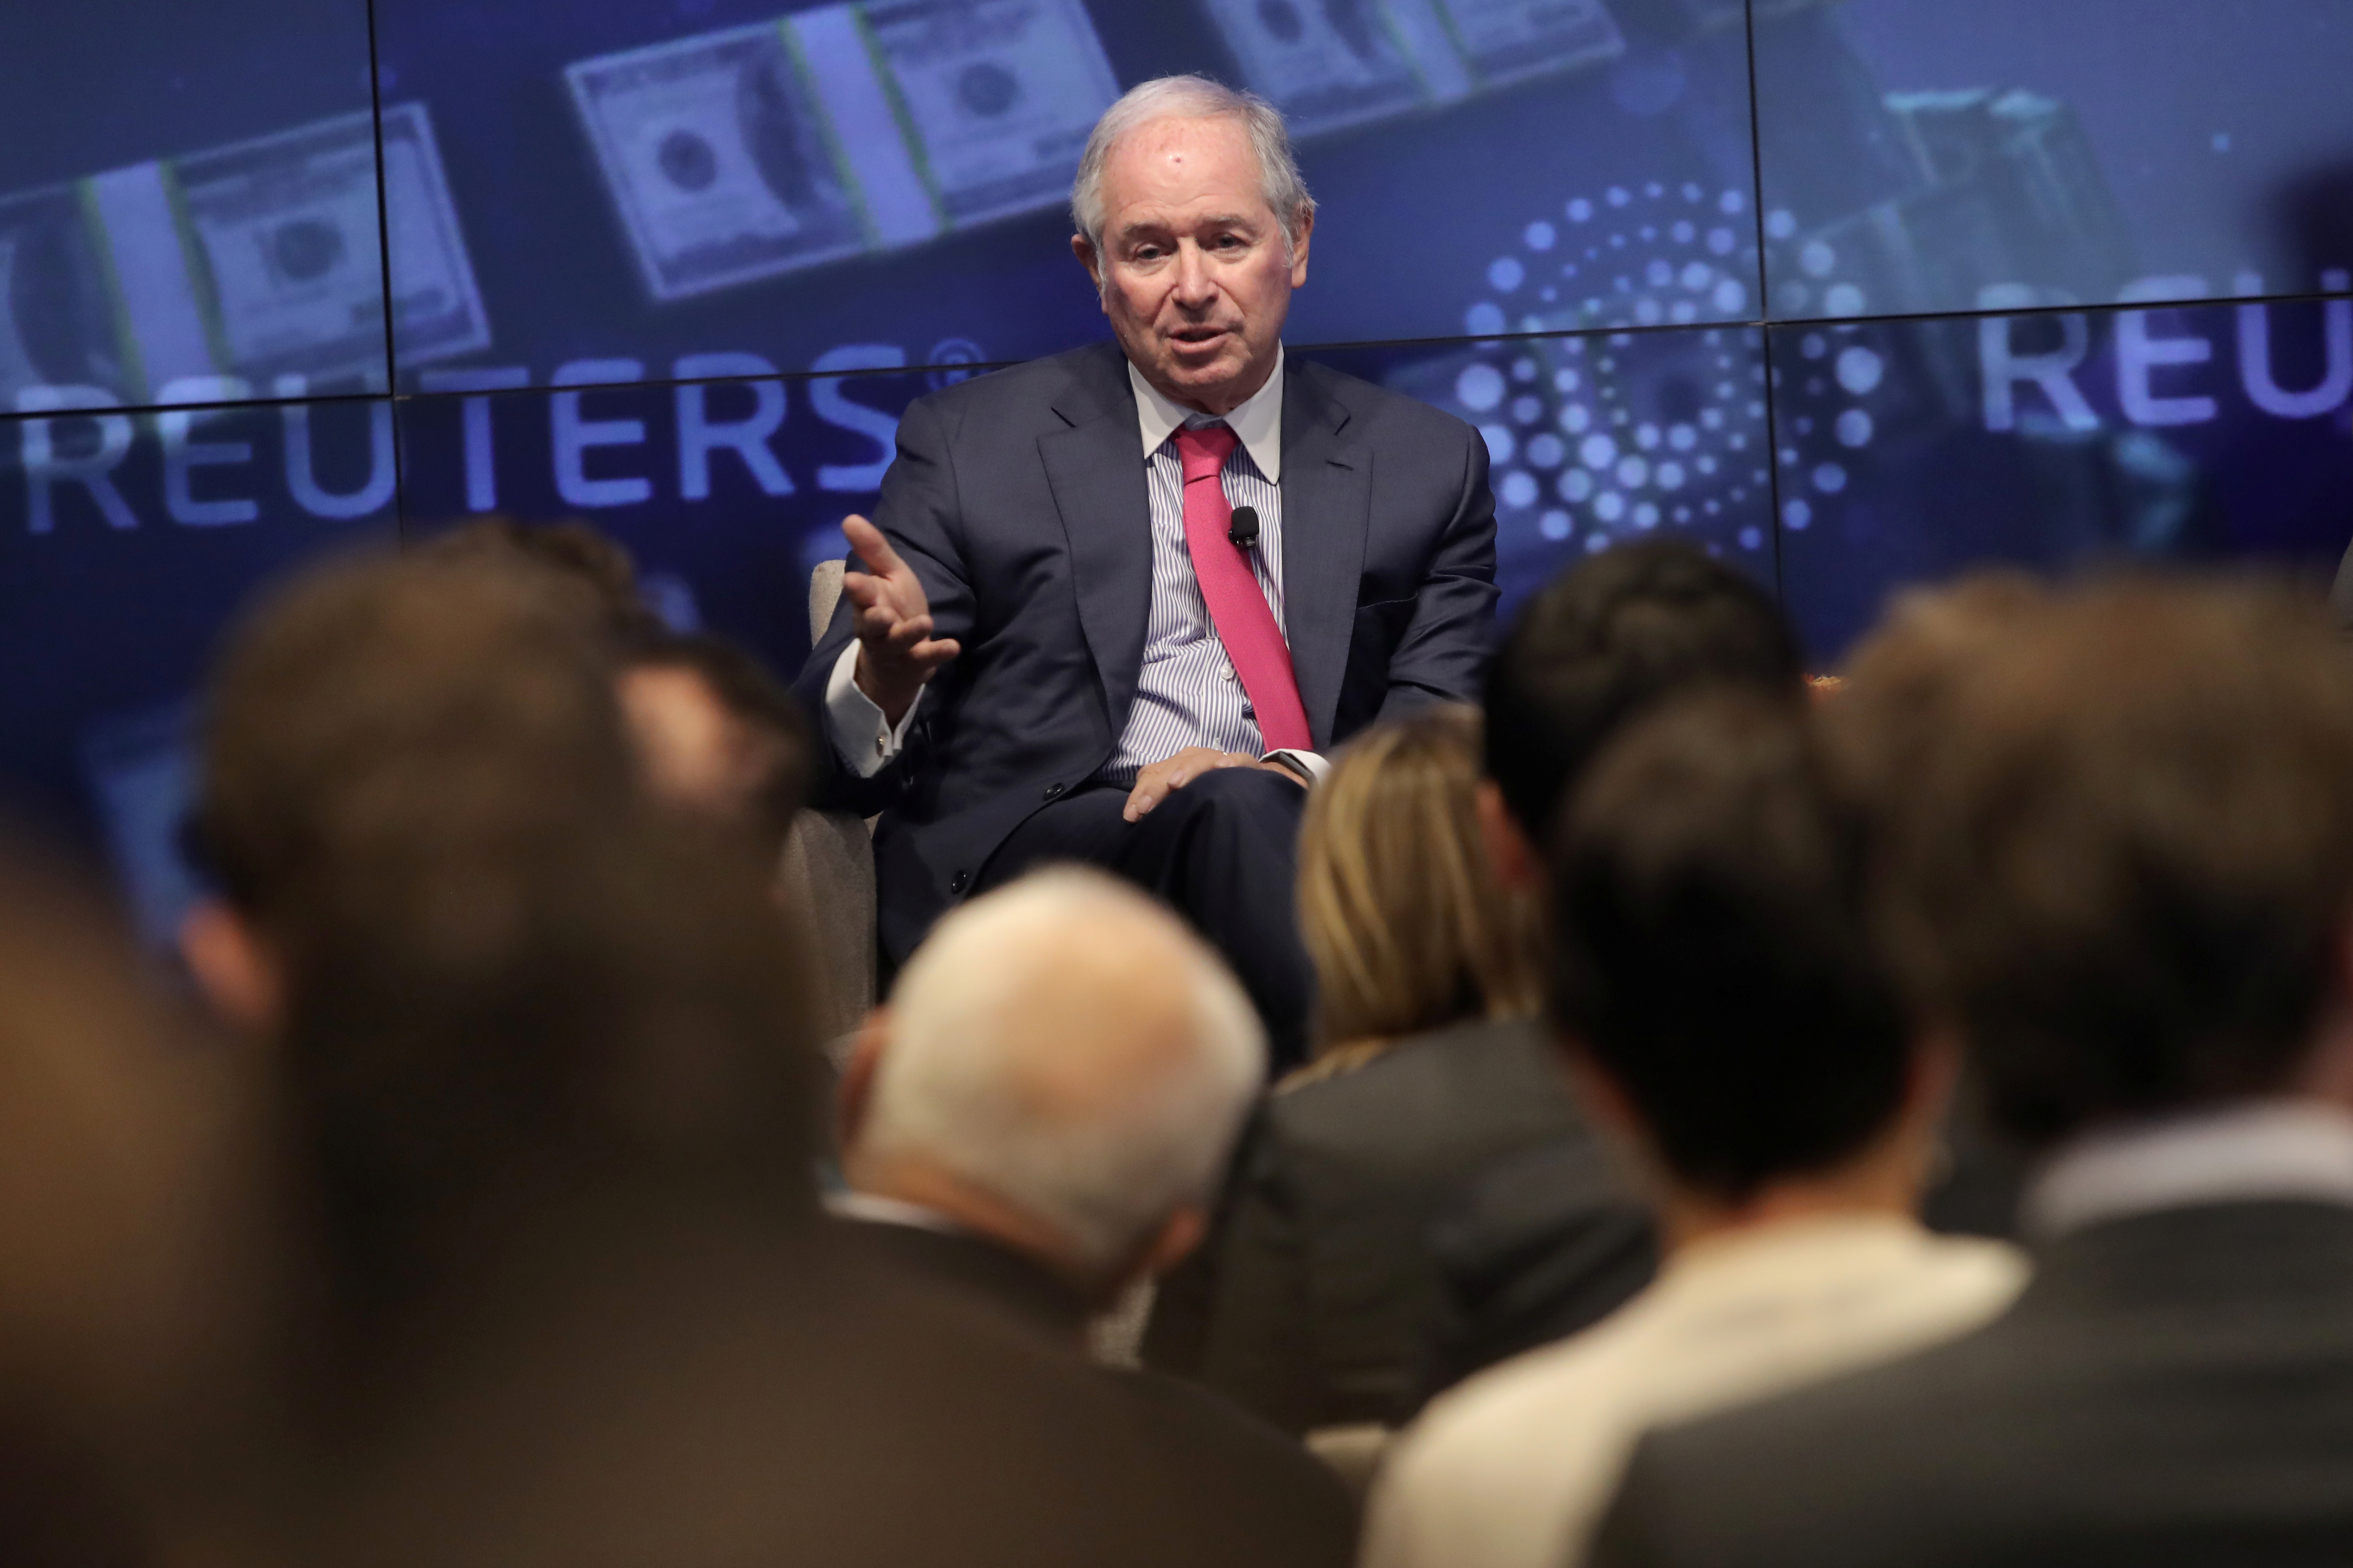 Blackstone Group CEO and Co-Founder Steve Schwarzman speaks at a Reuters Newsmaker event in New York, November 6, 2019. REUTERS/Gary He